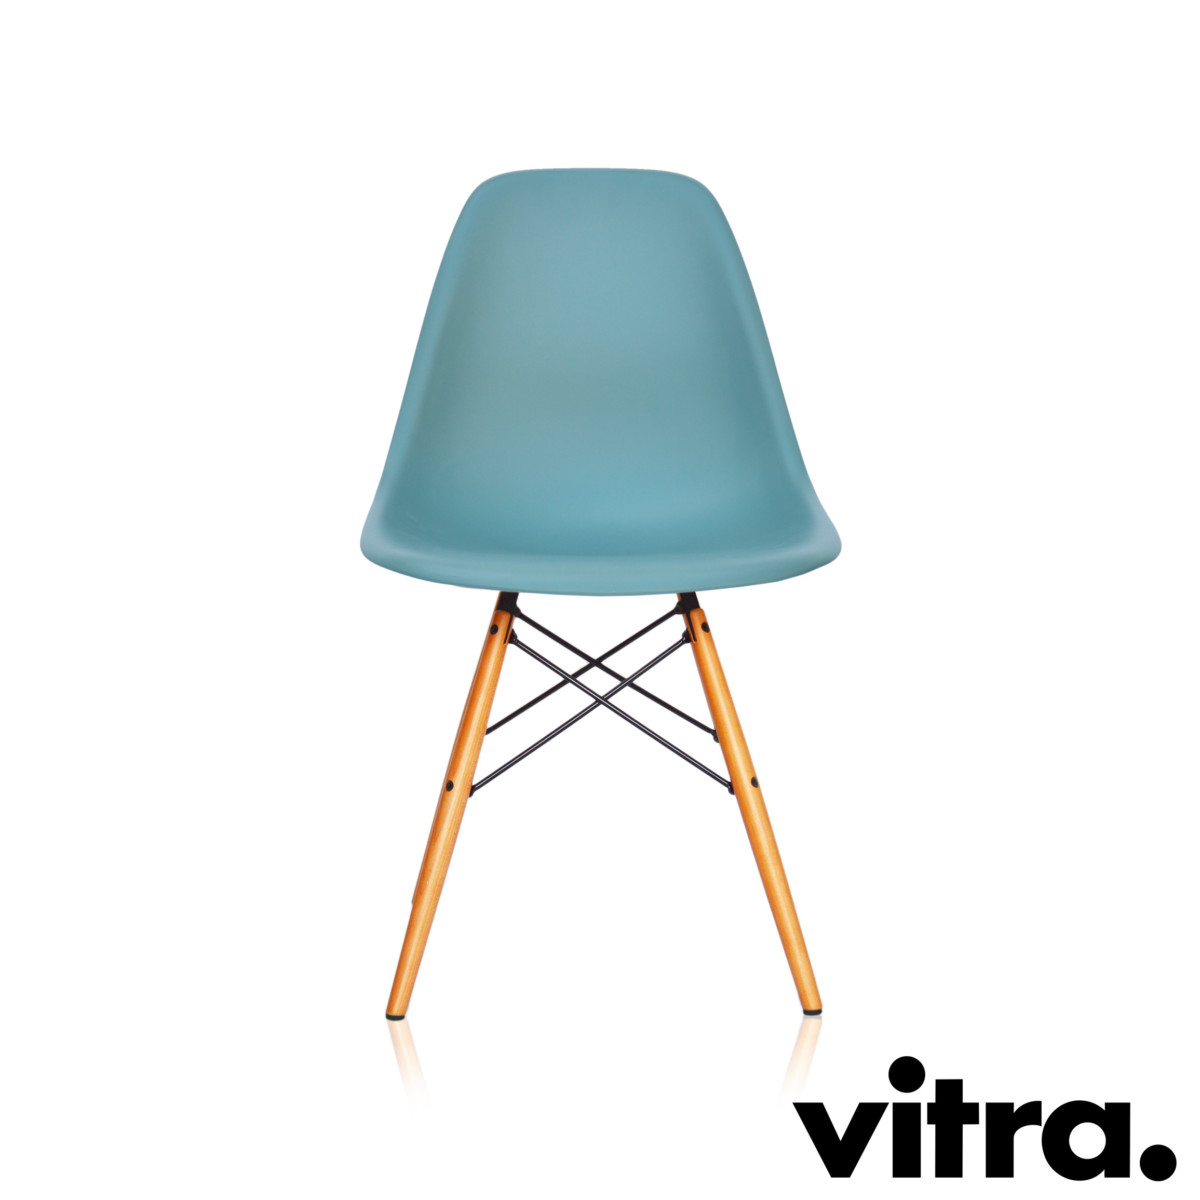 vitra eames plastic side chair dsw ocean ahorn neue h he. Black Bedroom Furniture Sets. Home Design Ideas